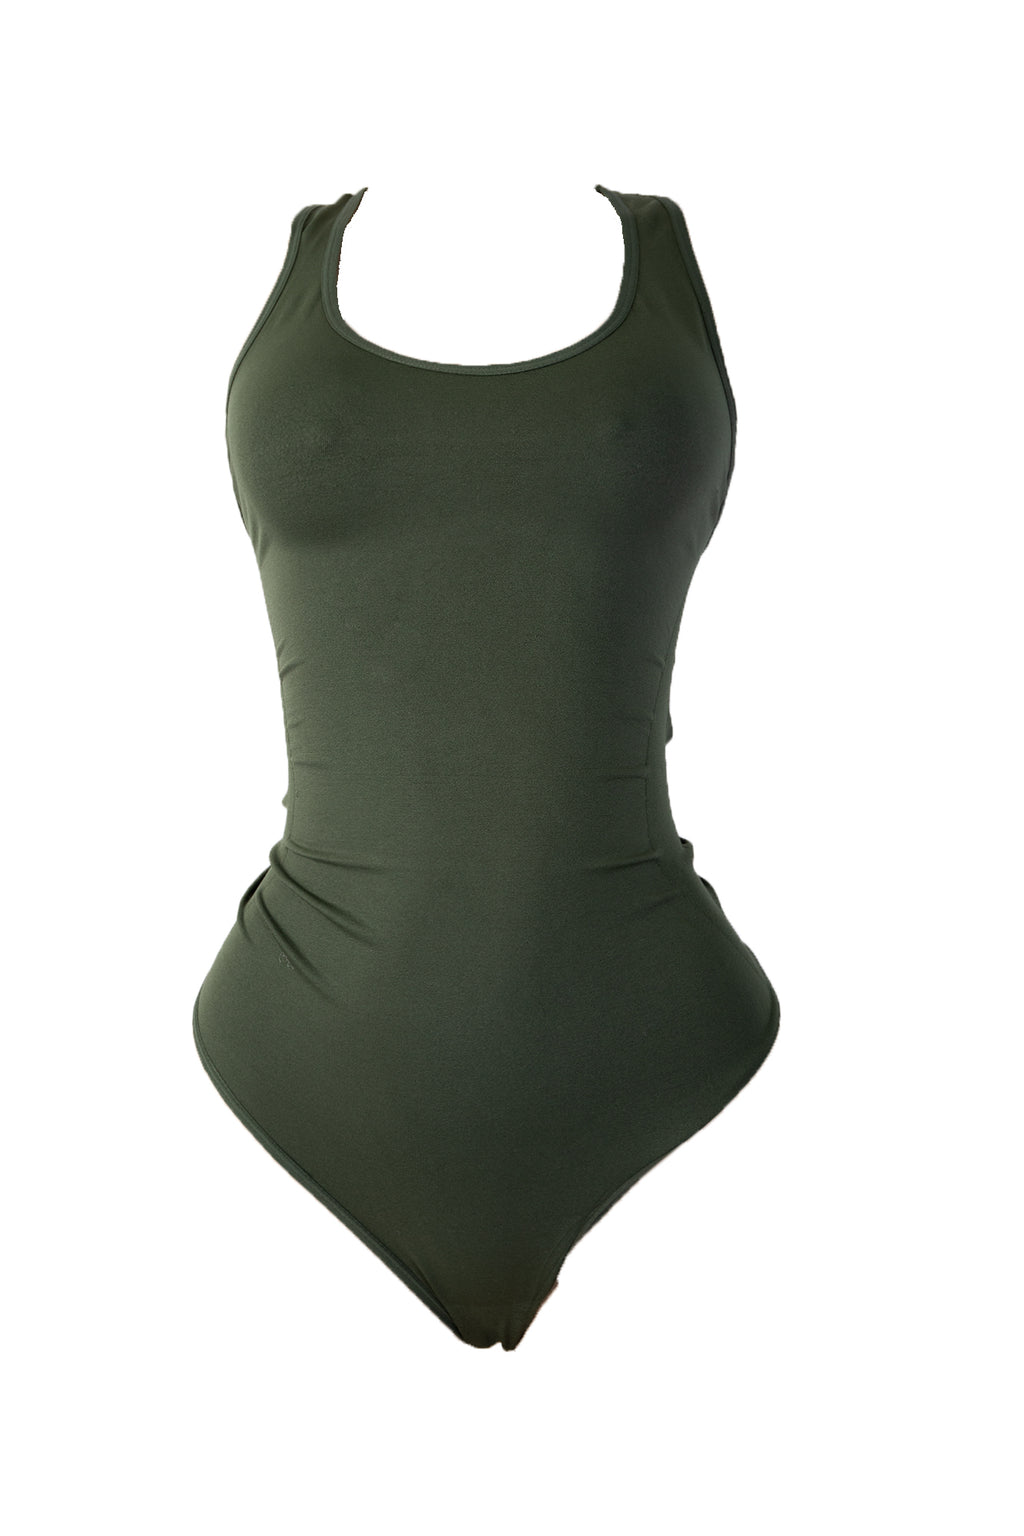 Olive Body By Babes Thong Bodysuit w/ Tummy Control